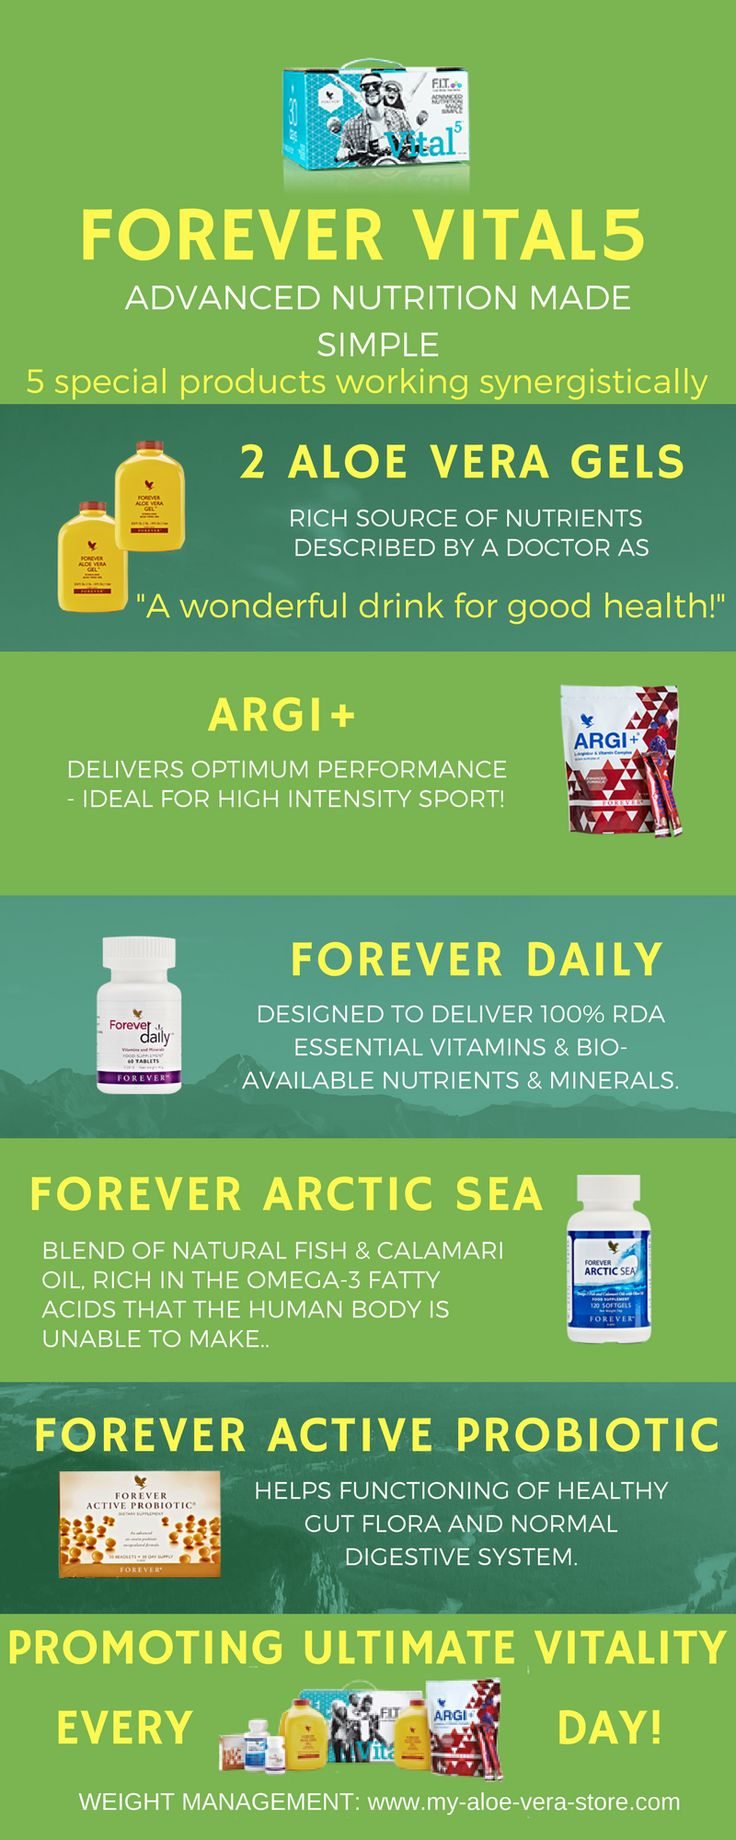 Here's how to move forward, not back into old habits, after achieving your fitness goals with Aloe Vera Diet (C9) and perhaps F15 too! Forever VITAL 5 consists of 5 special products working synergistically to promote ultimate vitality each and every day. Click video link for more info. #loveyourself